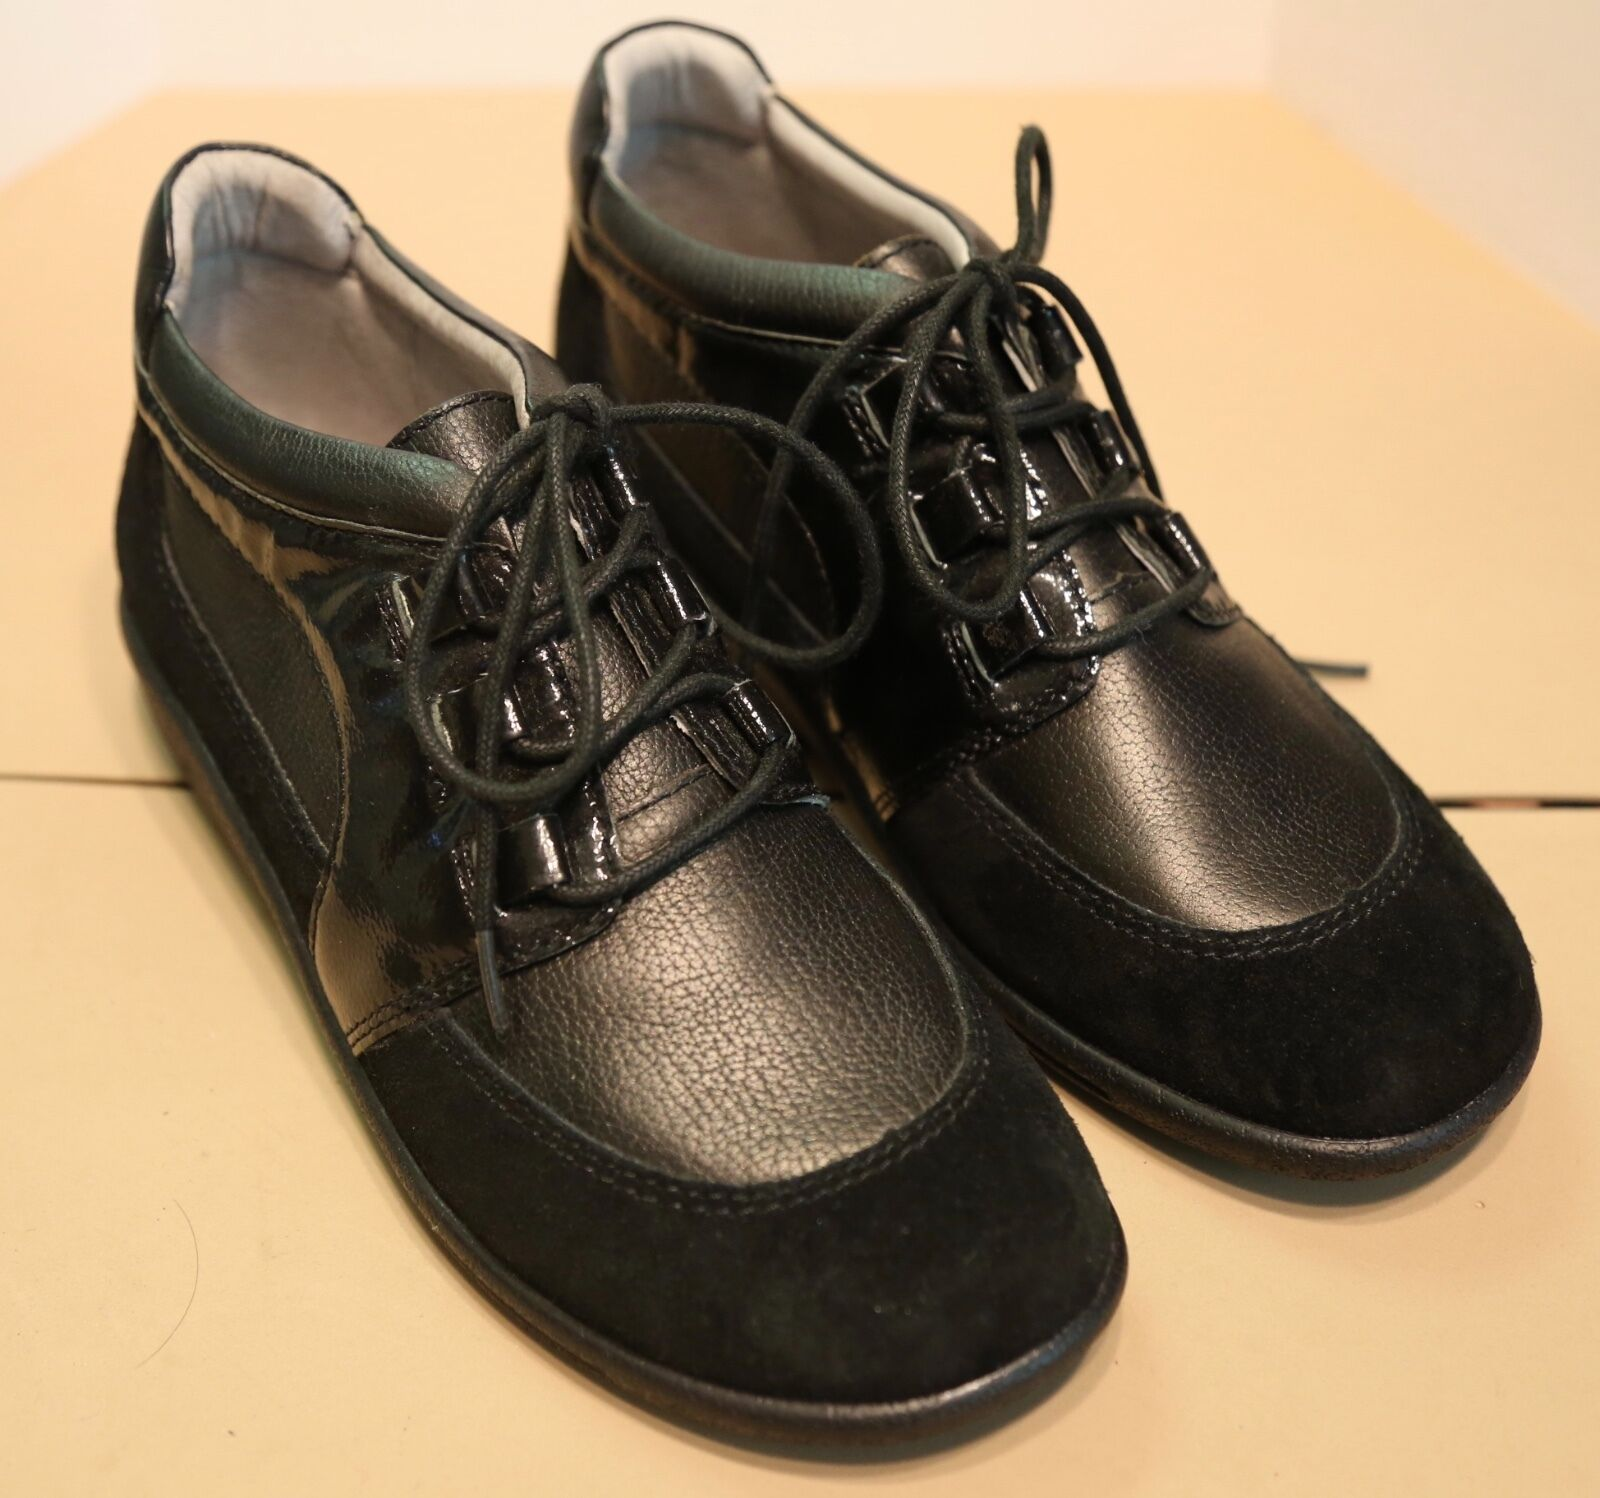 Sanita women's size shoes 38 black high top shoes size - New in box f3bed2